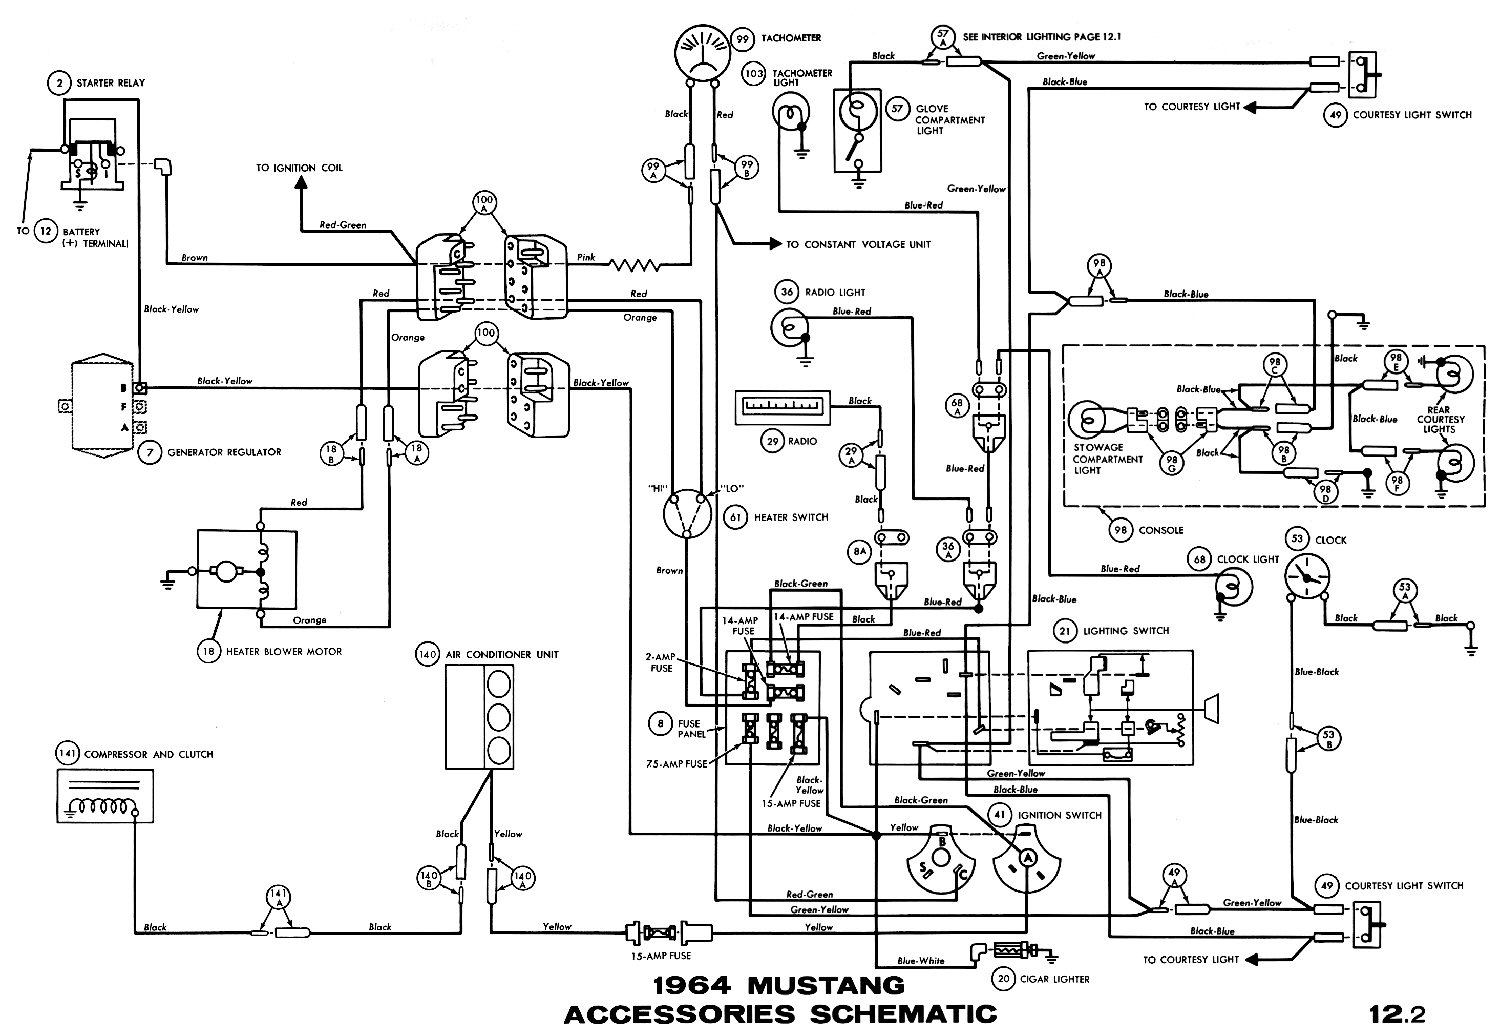 1964m 2015 mustang wiring diagram schematic mustang 2015 \u2022 free wiring  at virtualis.co